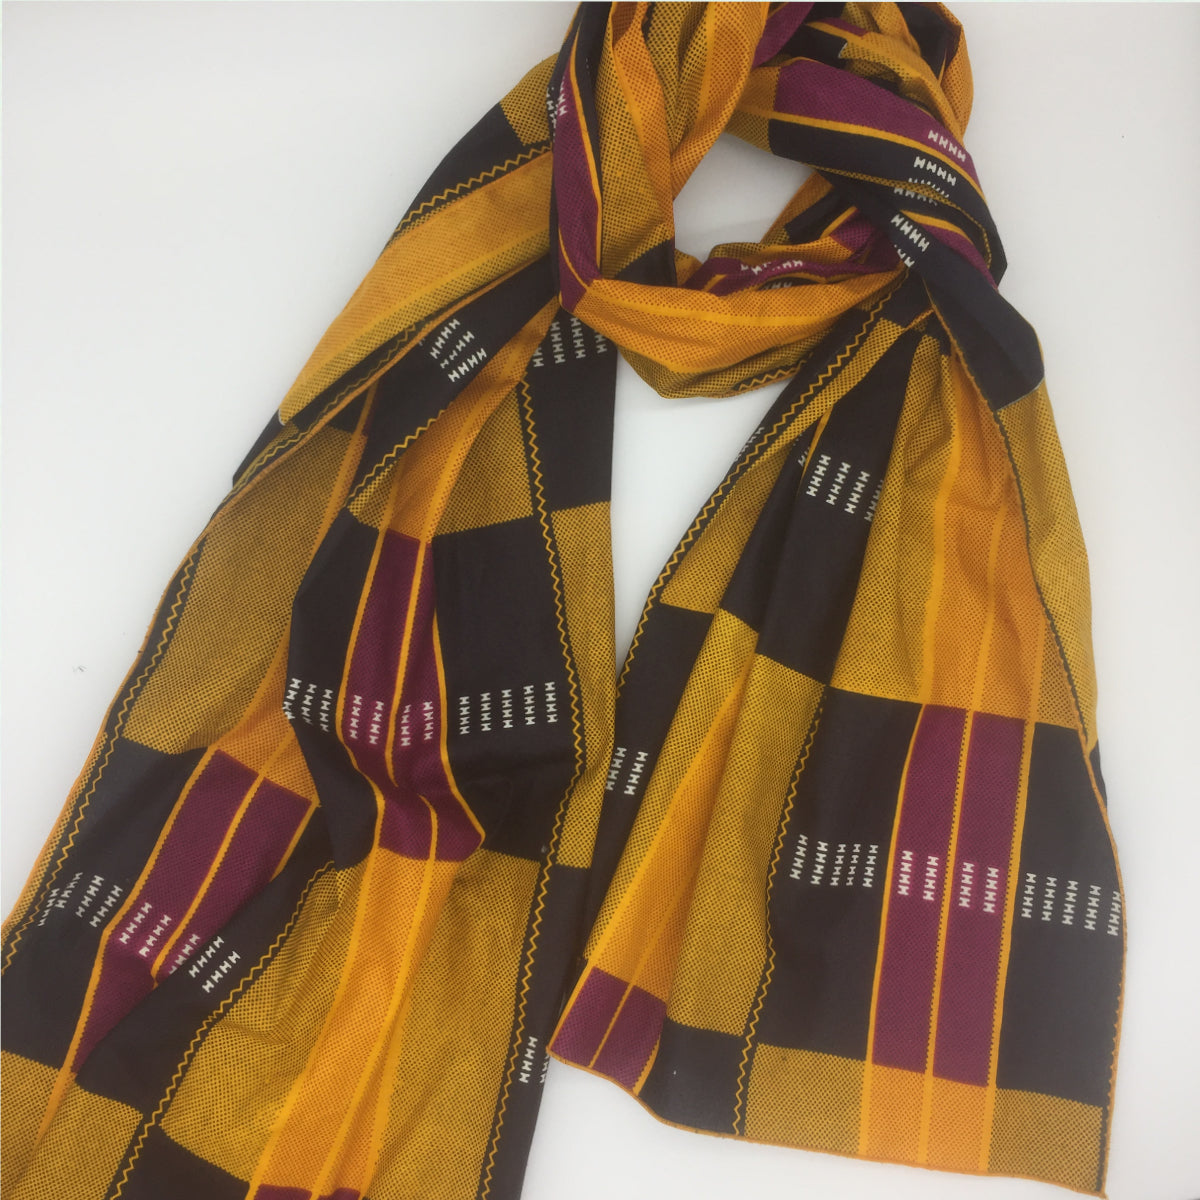 Pumpkin Spice Kente Headwrap